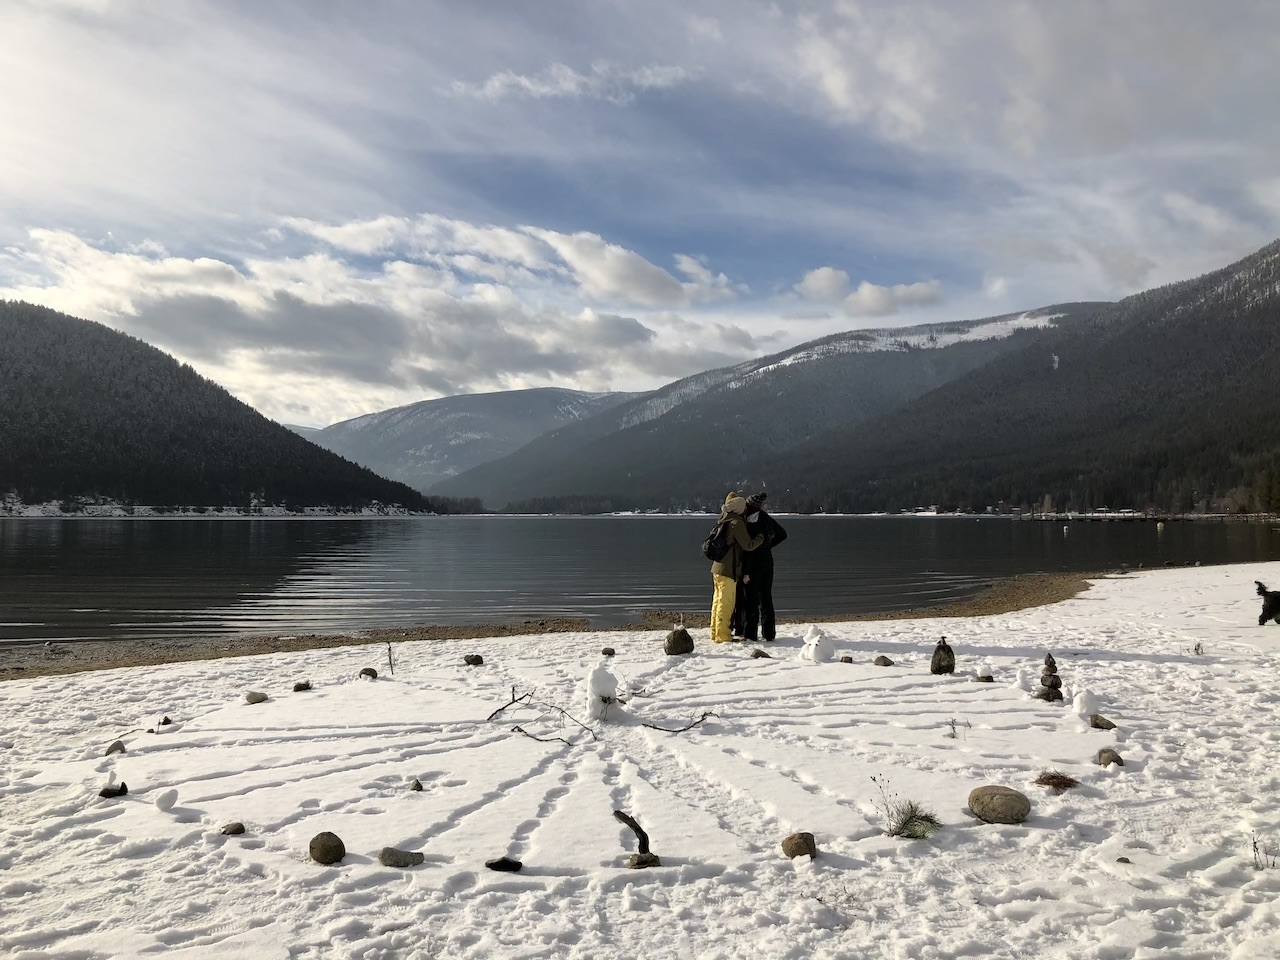 Making a mandala on the shores of Kootenay Lake. (Classmates in the background.)